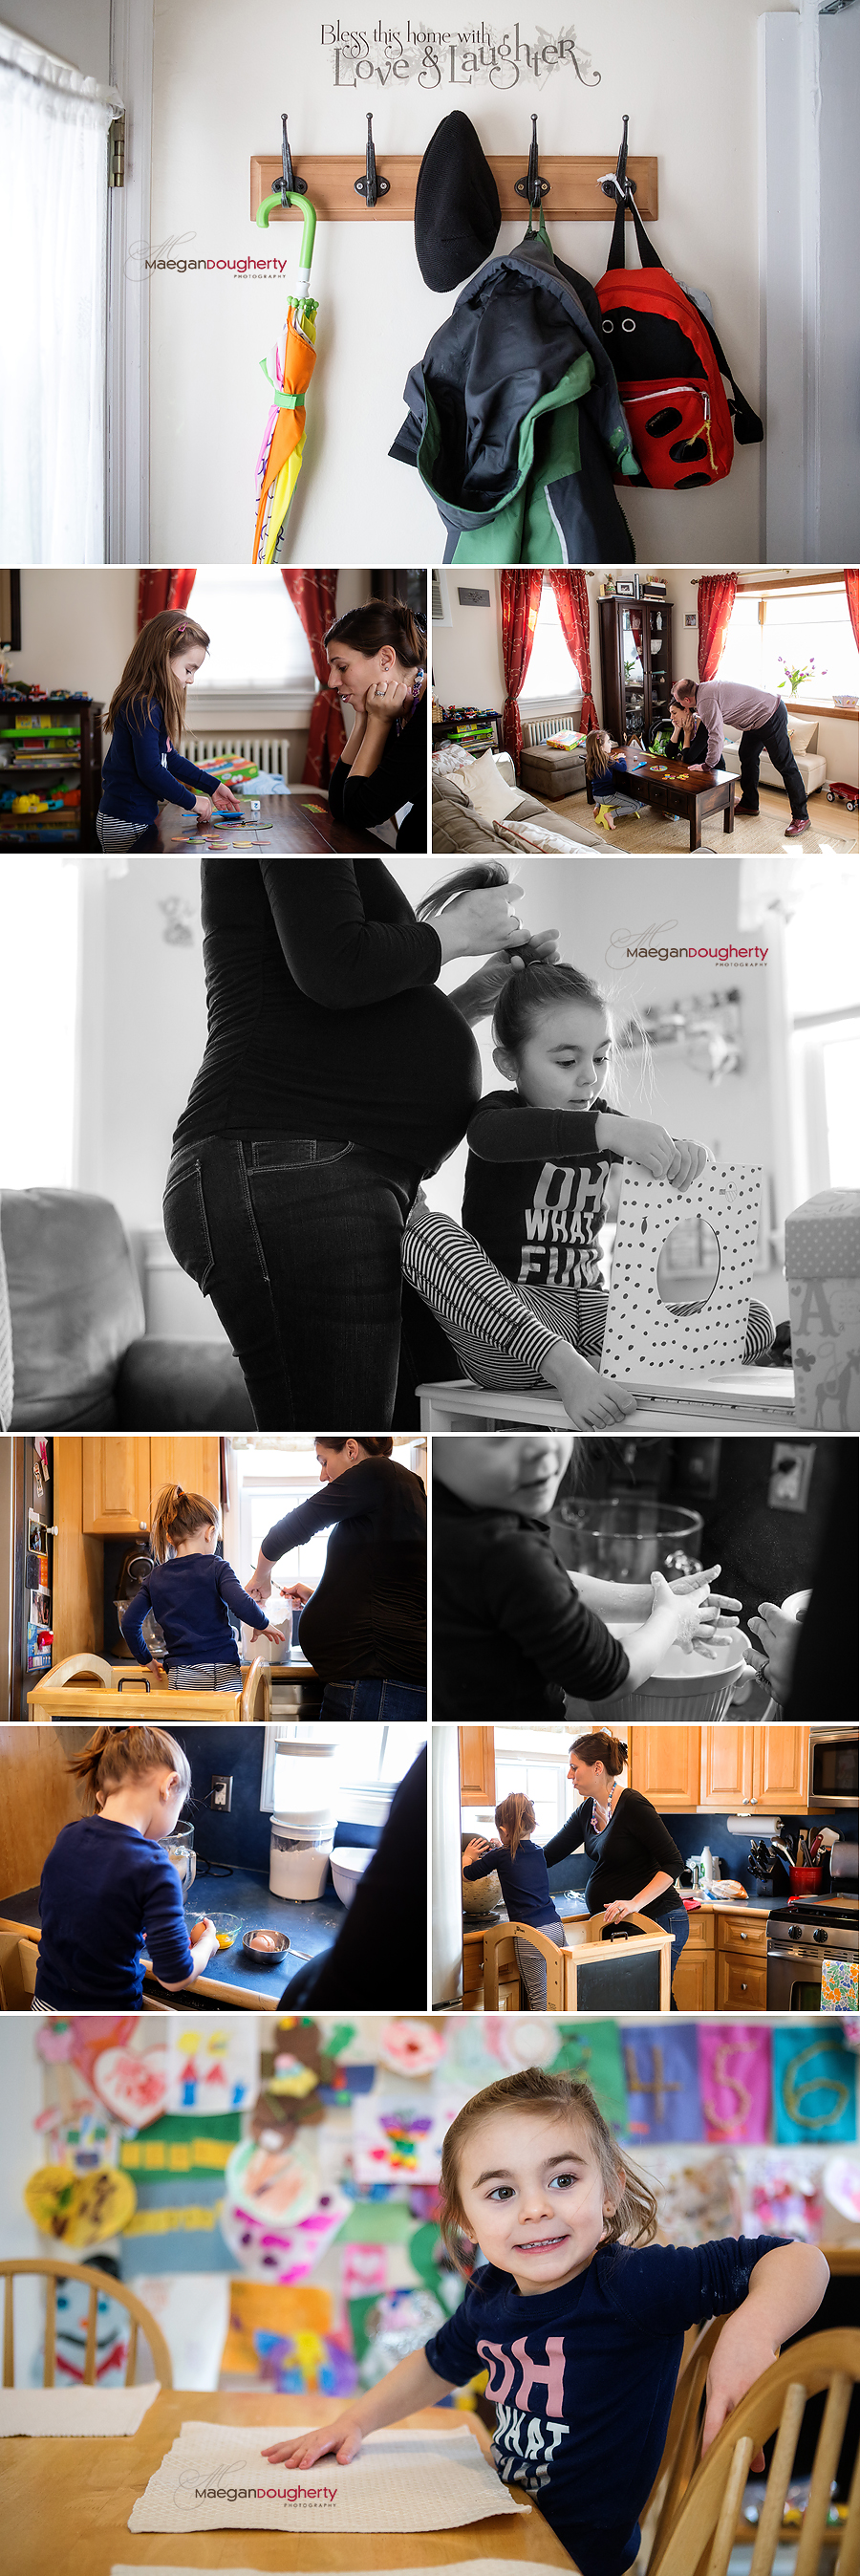 bergen county nj pregnancy photography